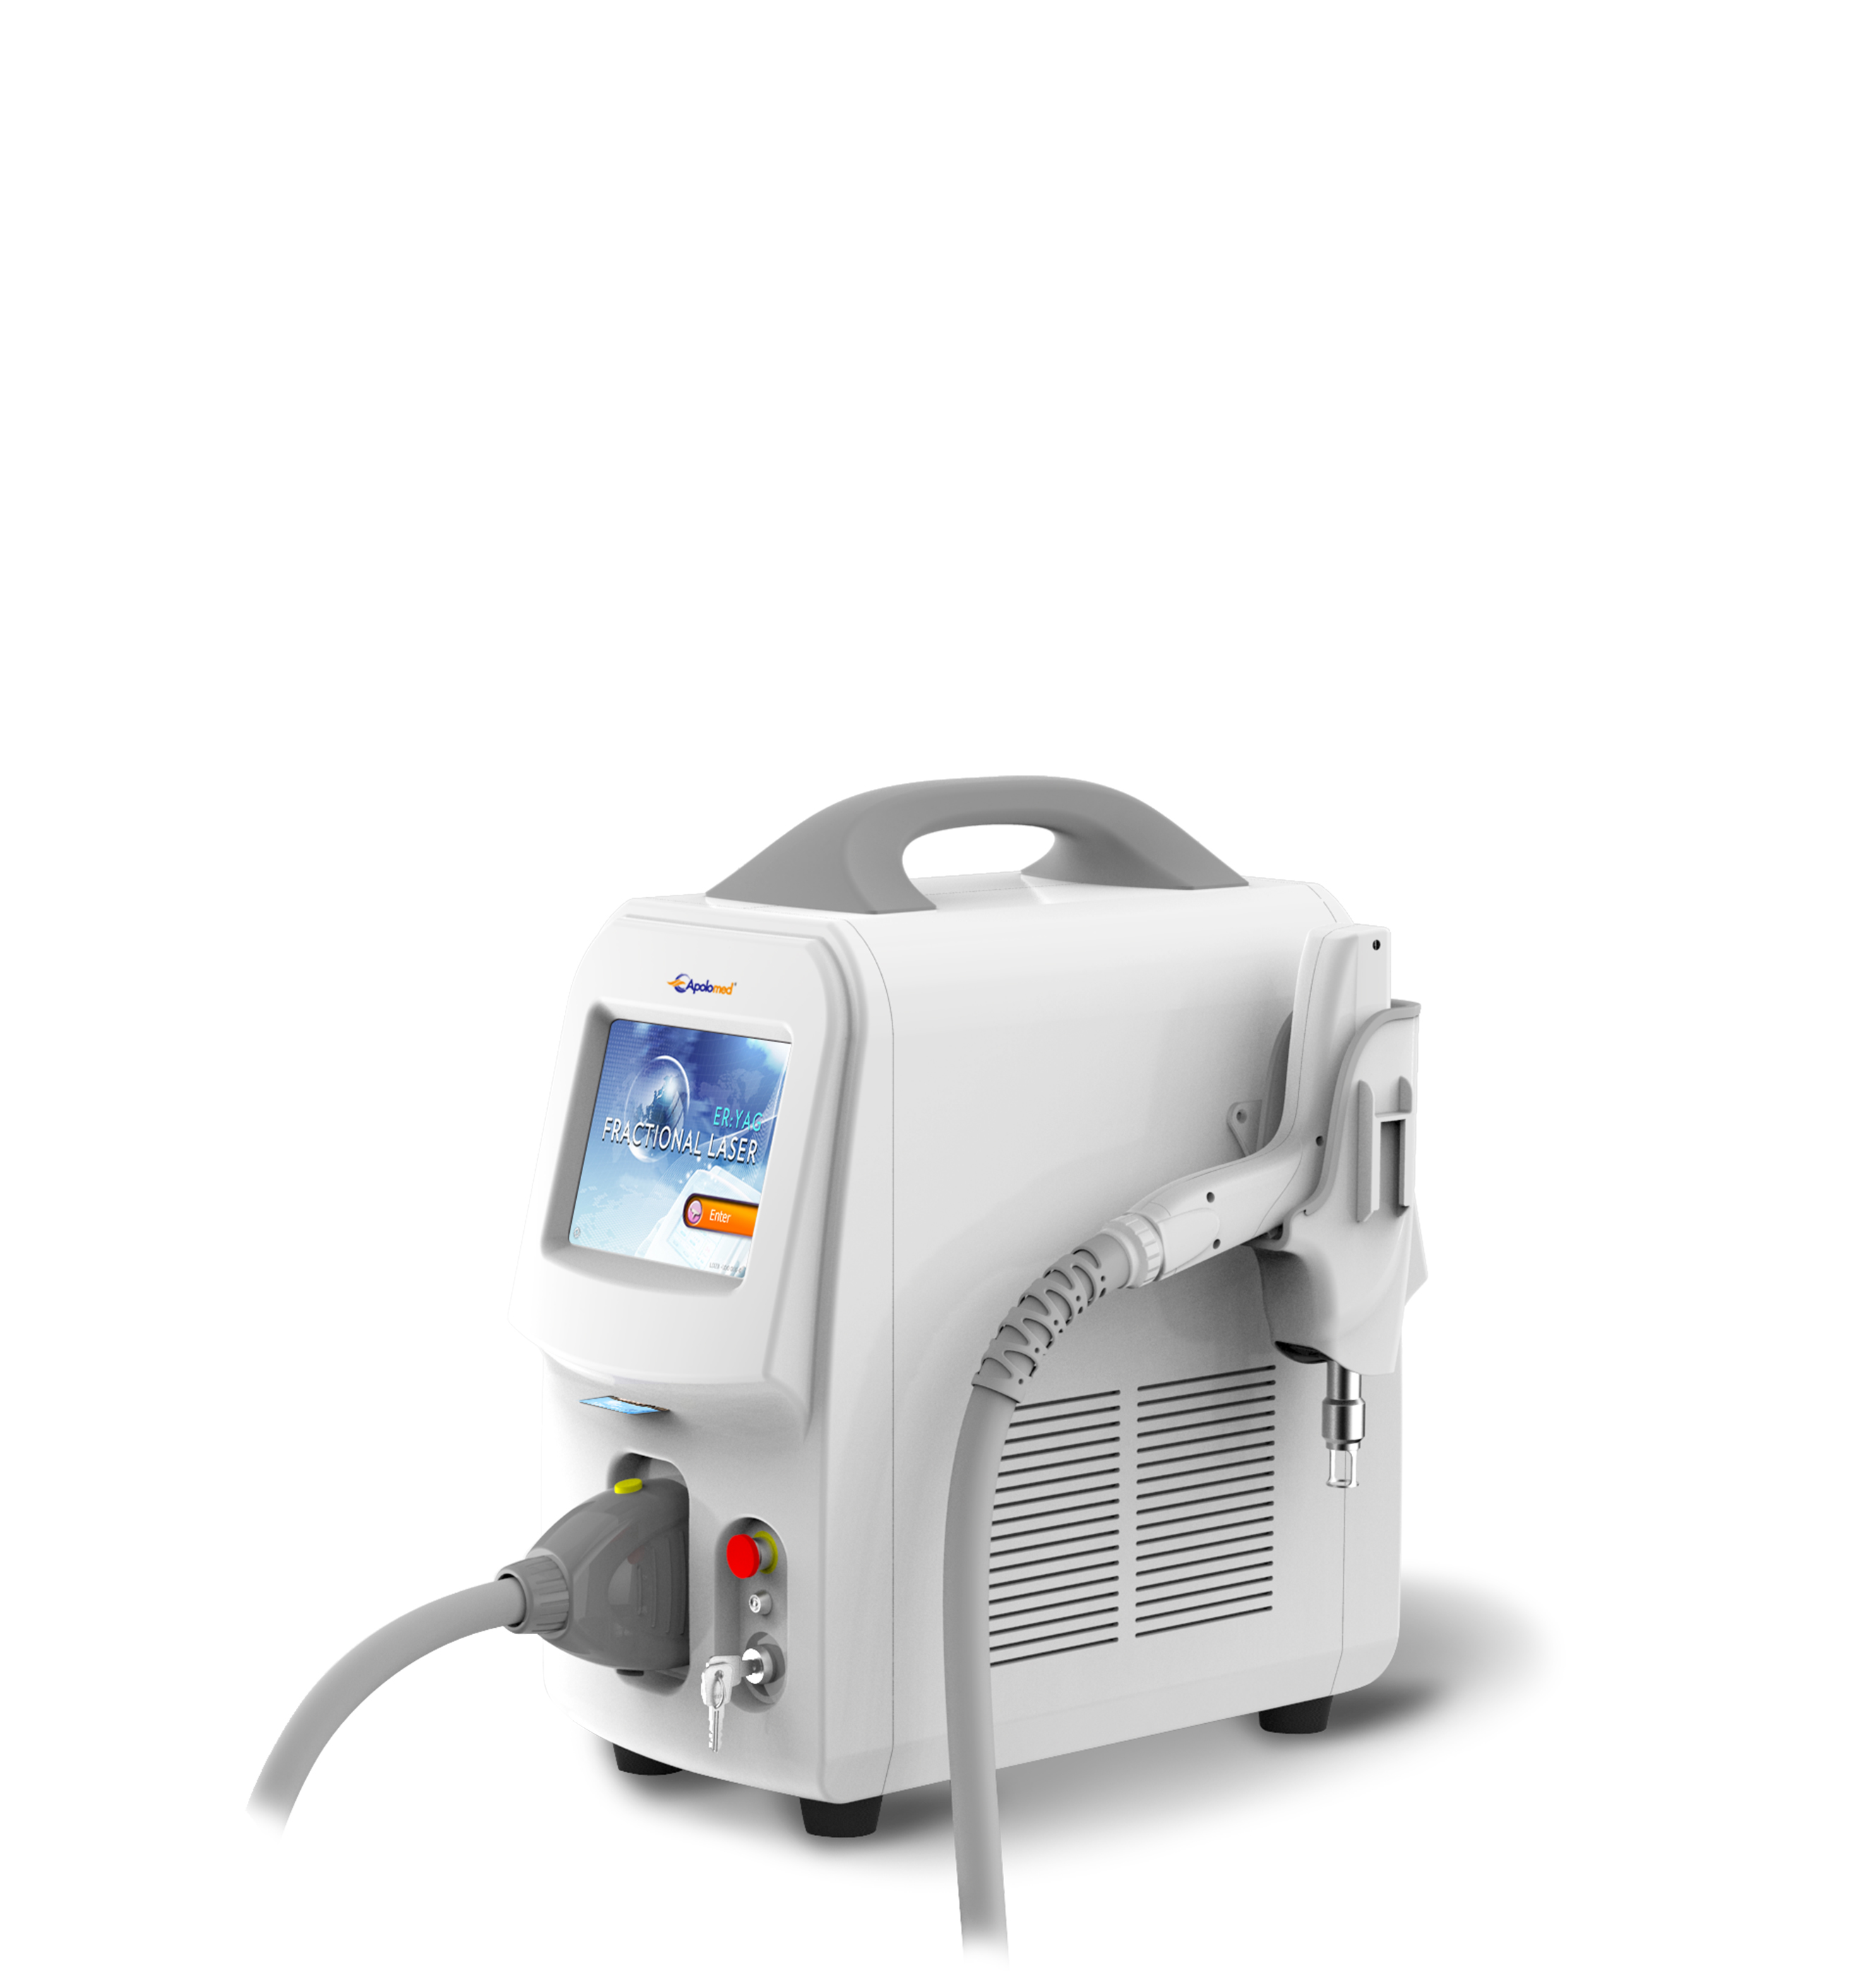 YAG Fractional Laser HS-282 Featured Image